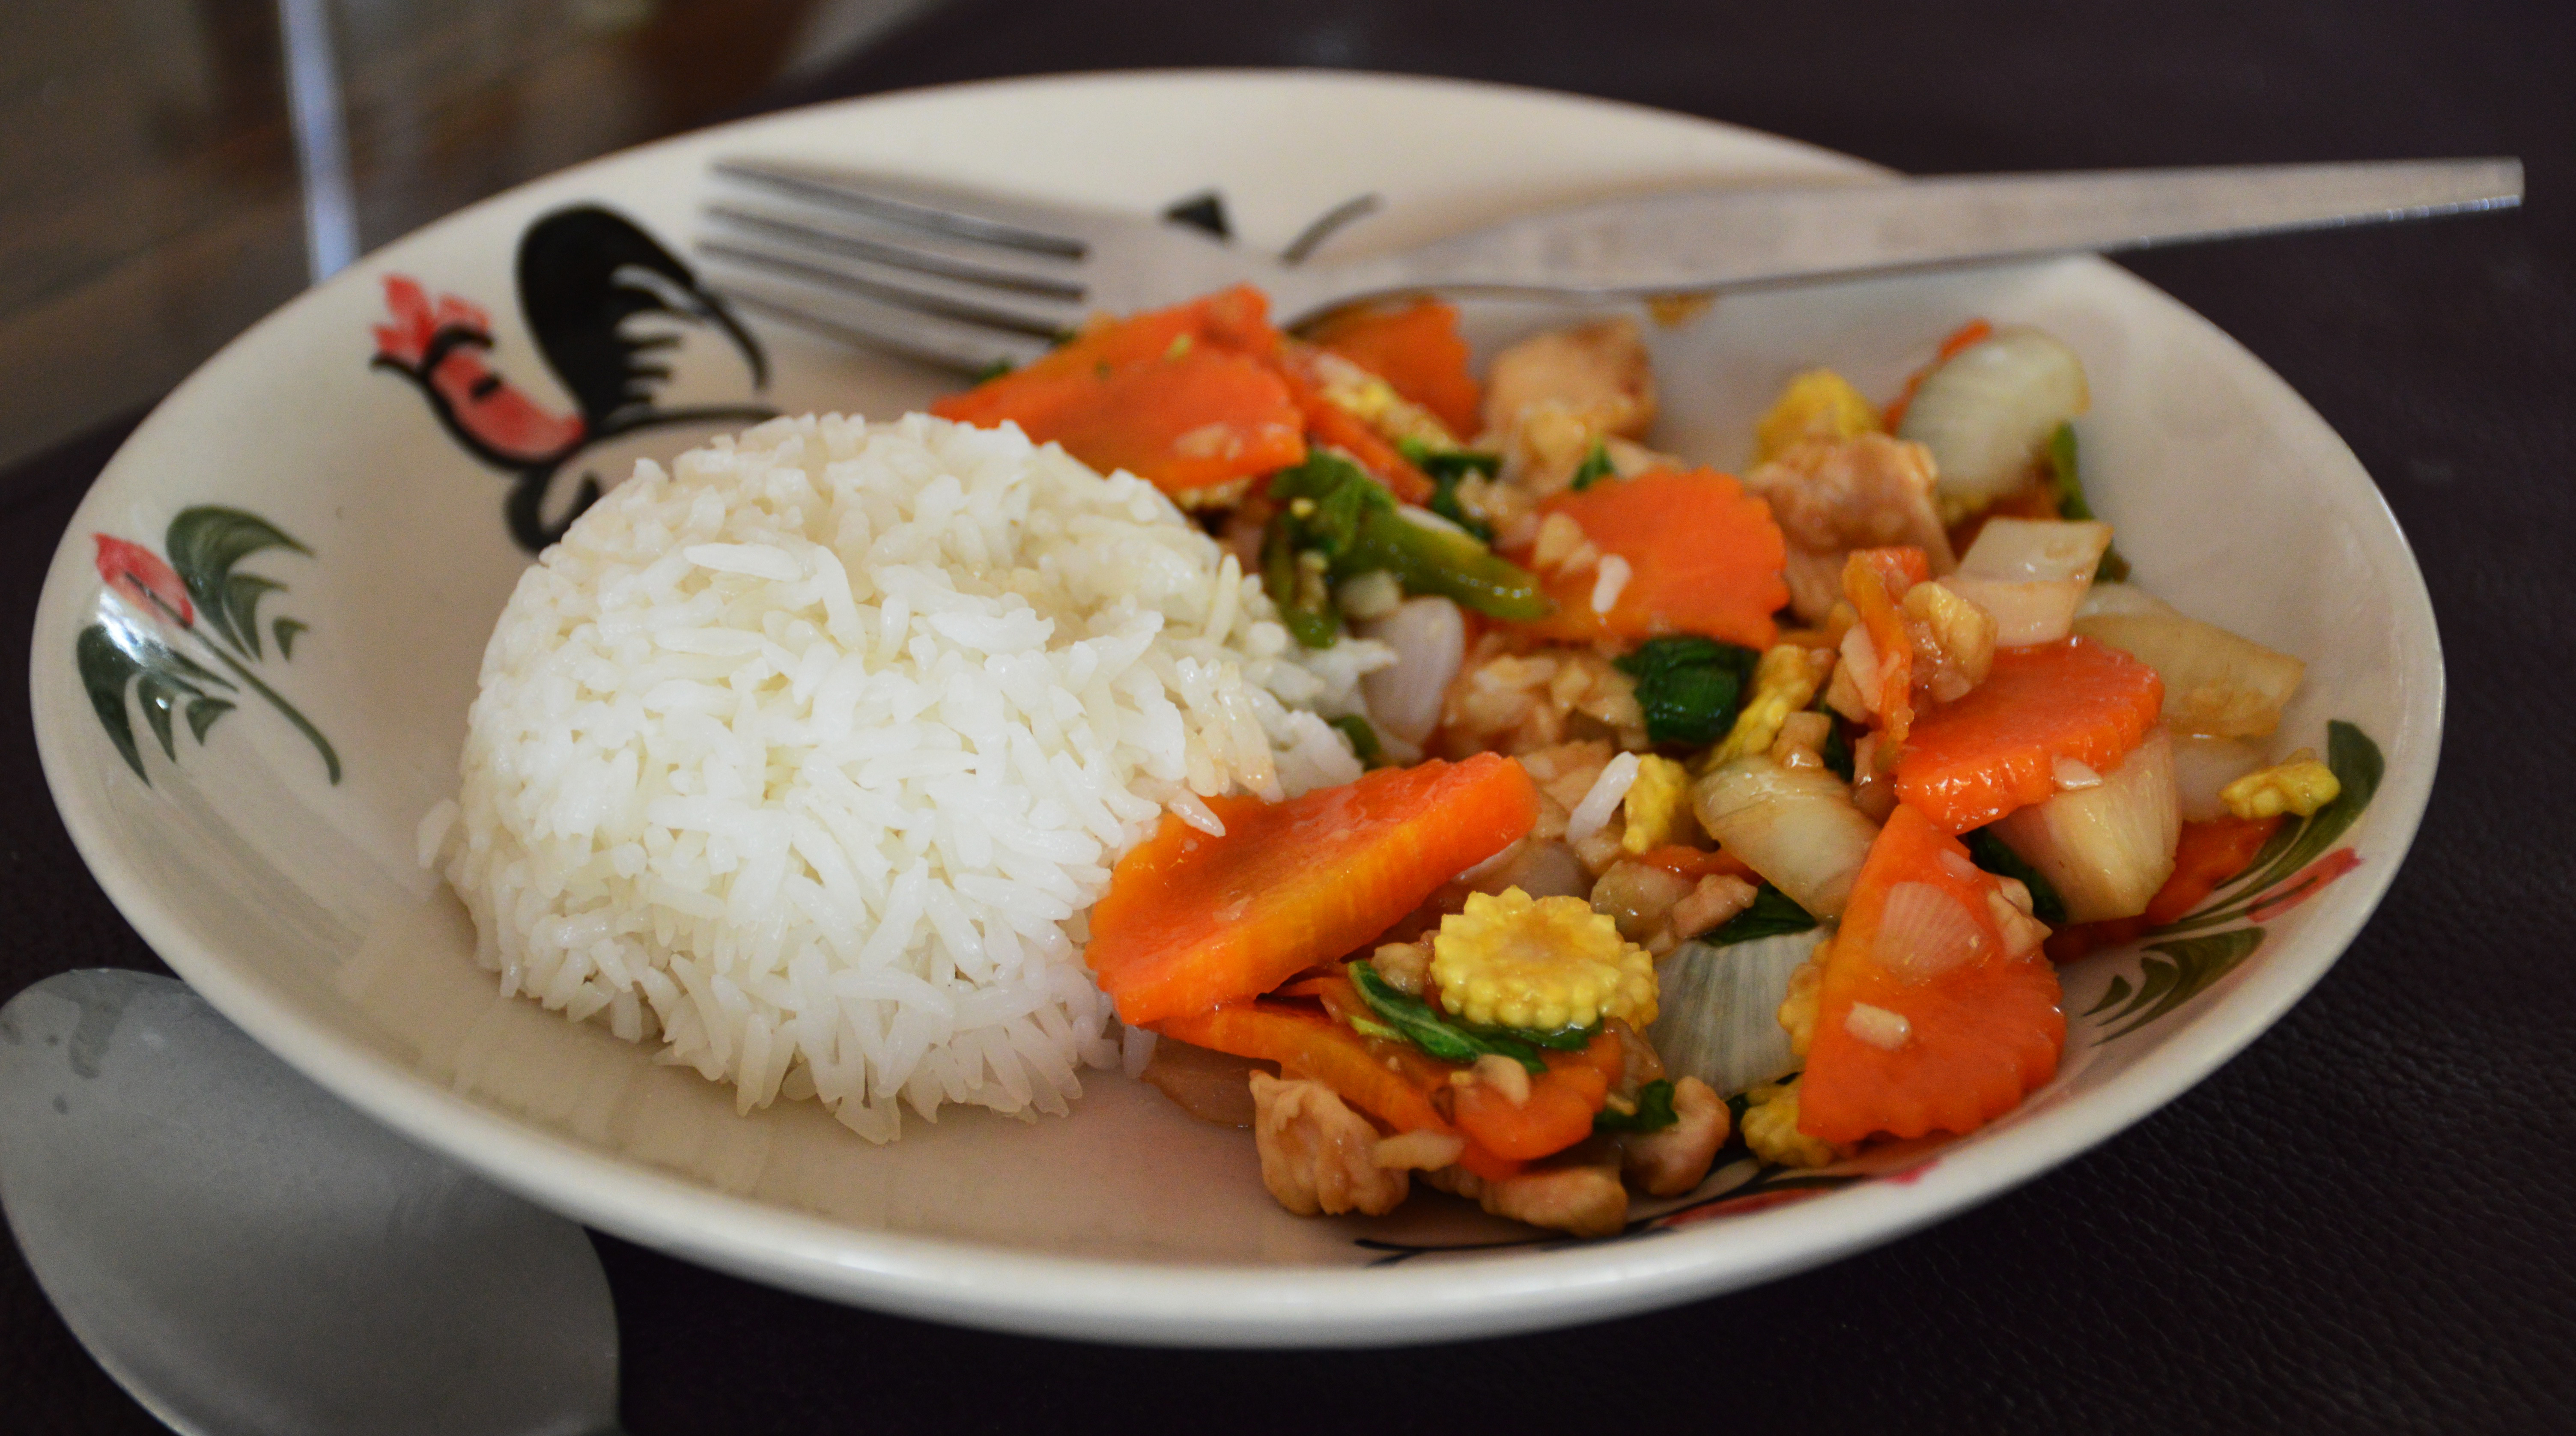 Cashew chicken Asia Scenic cooking school Double-Barrelled Travel